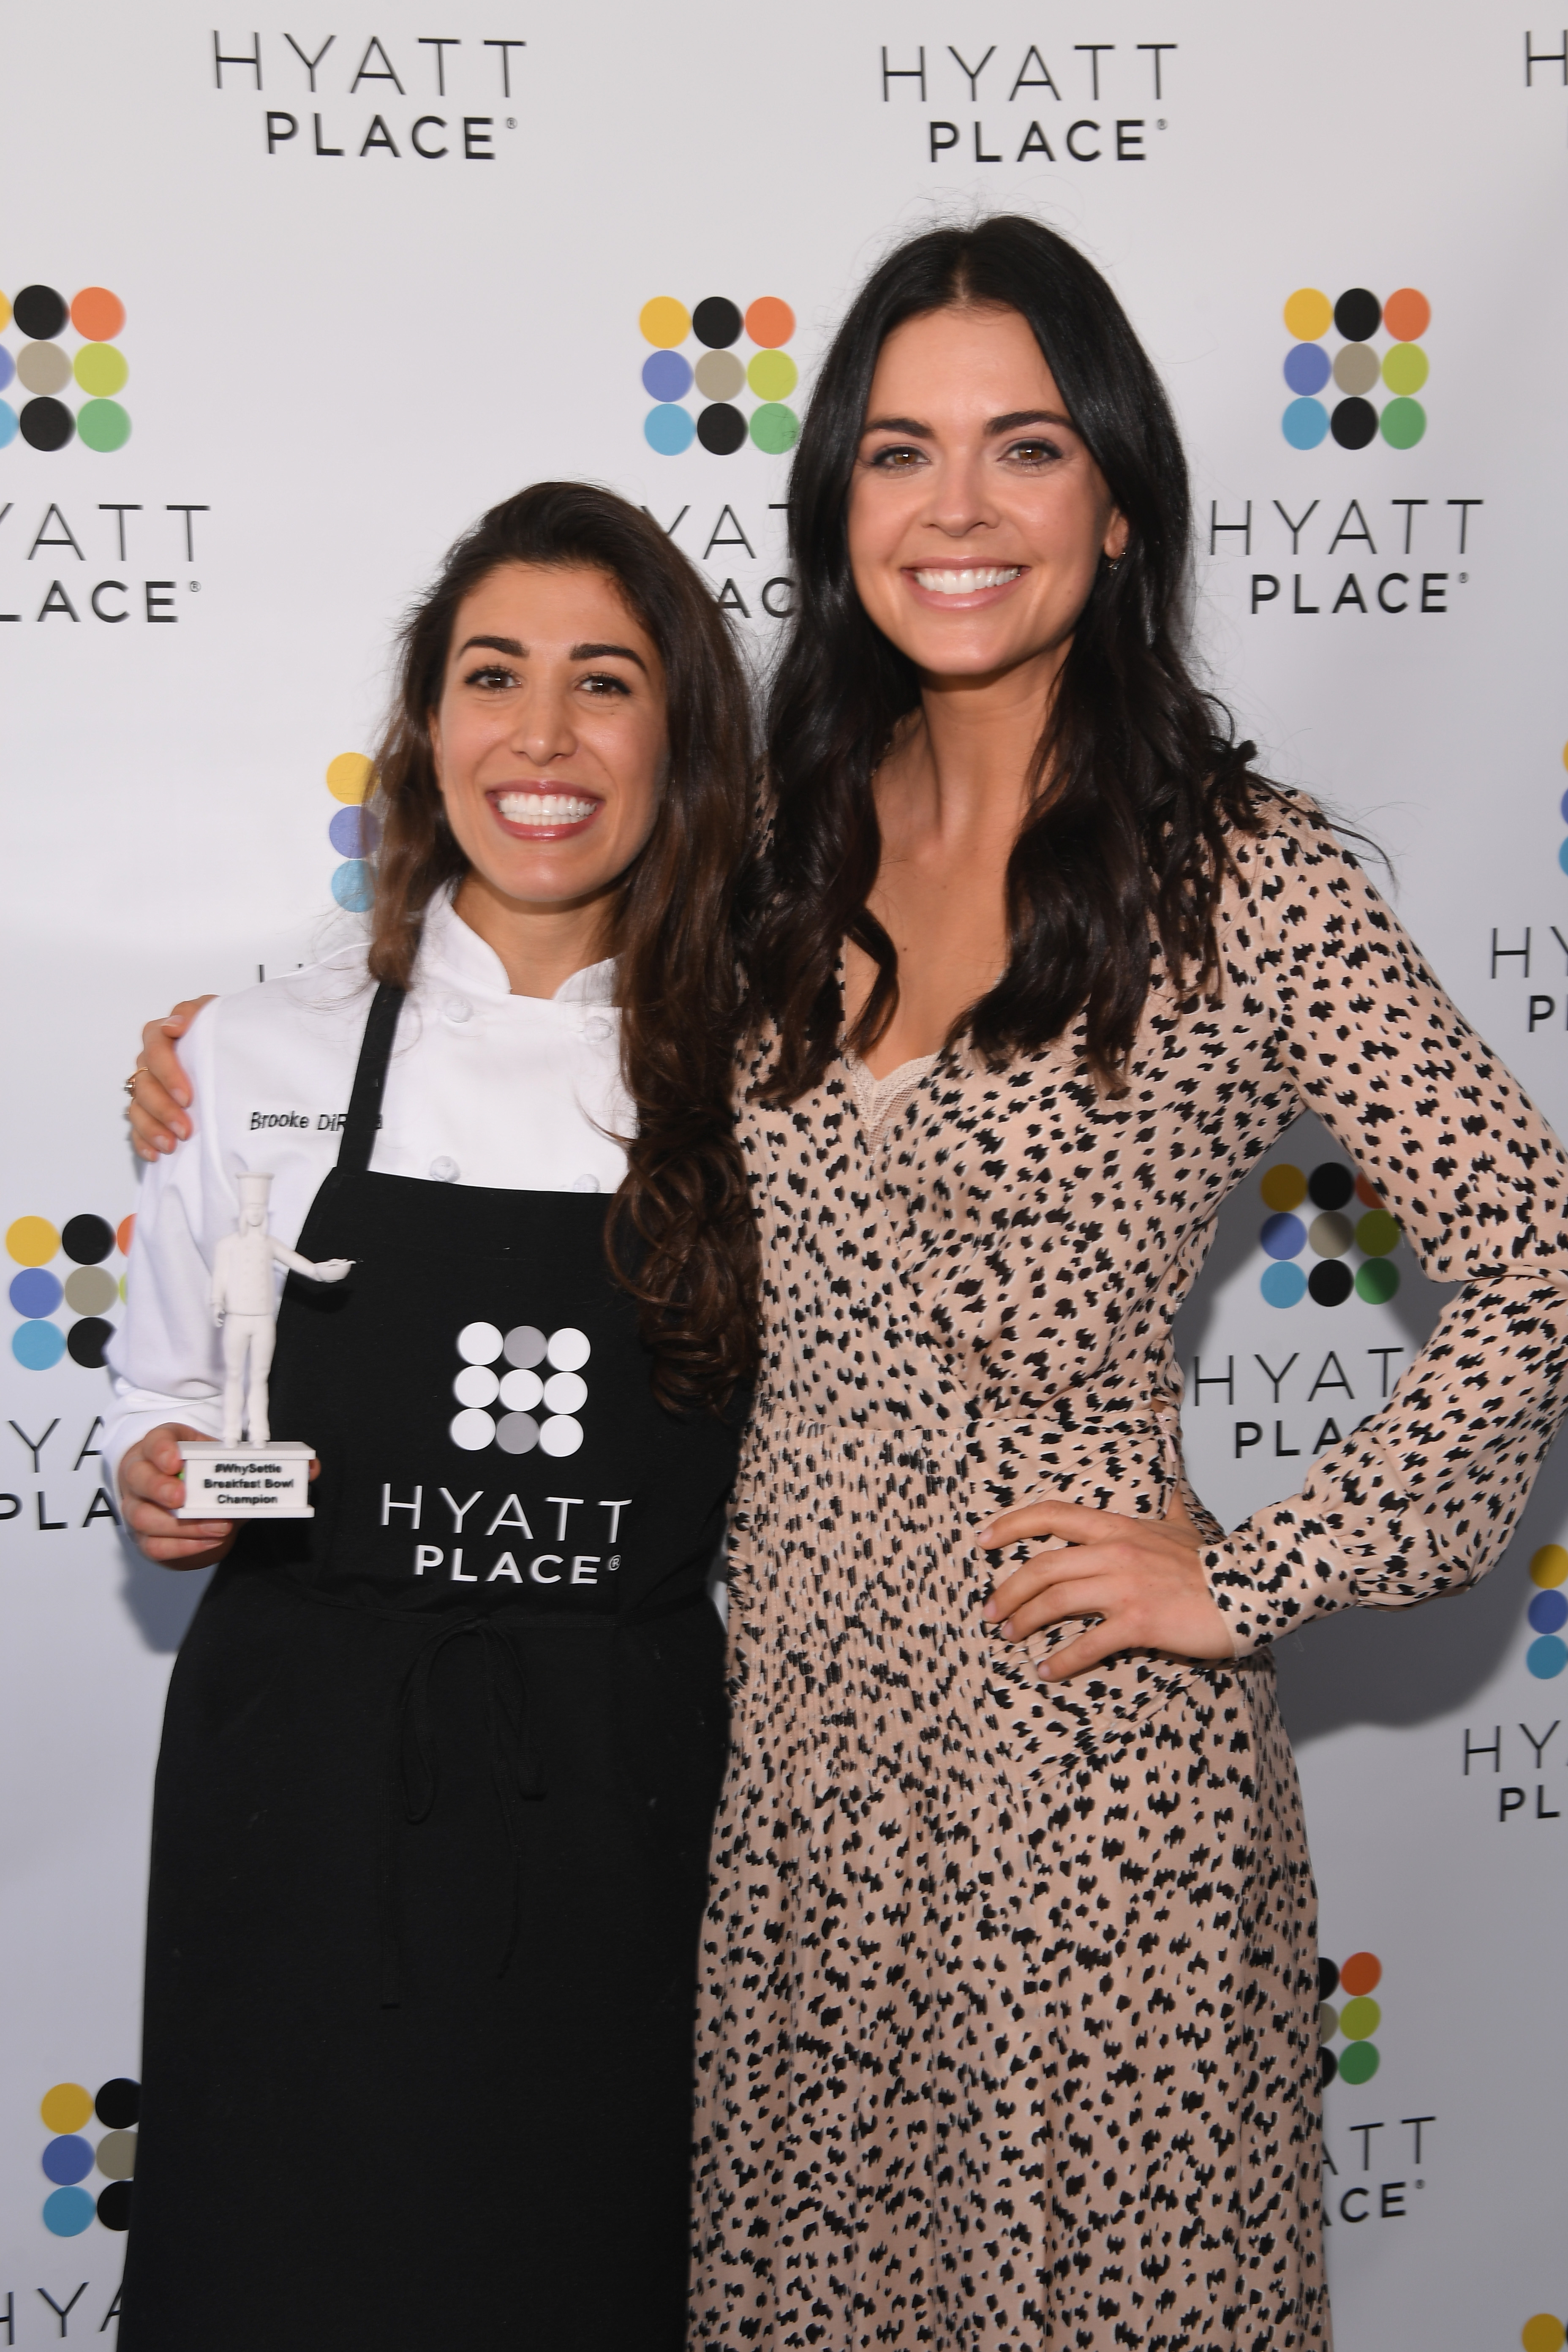 NEW YORK, NY - JUNE 20: TV Host and Celebrity Chef Katie Lee (R) teams up with Hyatt Place to award Institution of Culinary Education student chef Brooke DiResta $10,000 for winning the Hyatt Place #WhySettle Battle of the Breakfast Bowls student chef competition at Hyatt Place New York/Midtown-South on June 20, 2017 in New York City. (Photo by Dave Kotinsky/Getty Images for Hyatt Place)